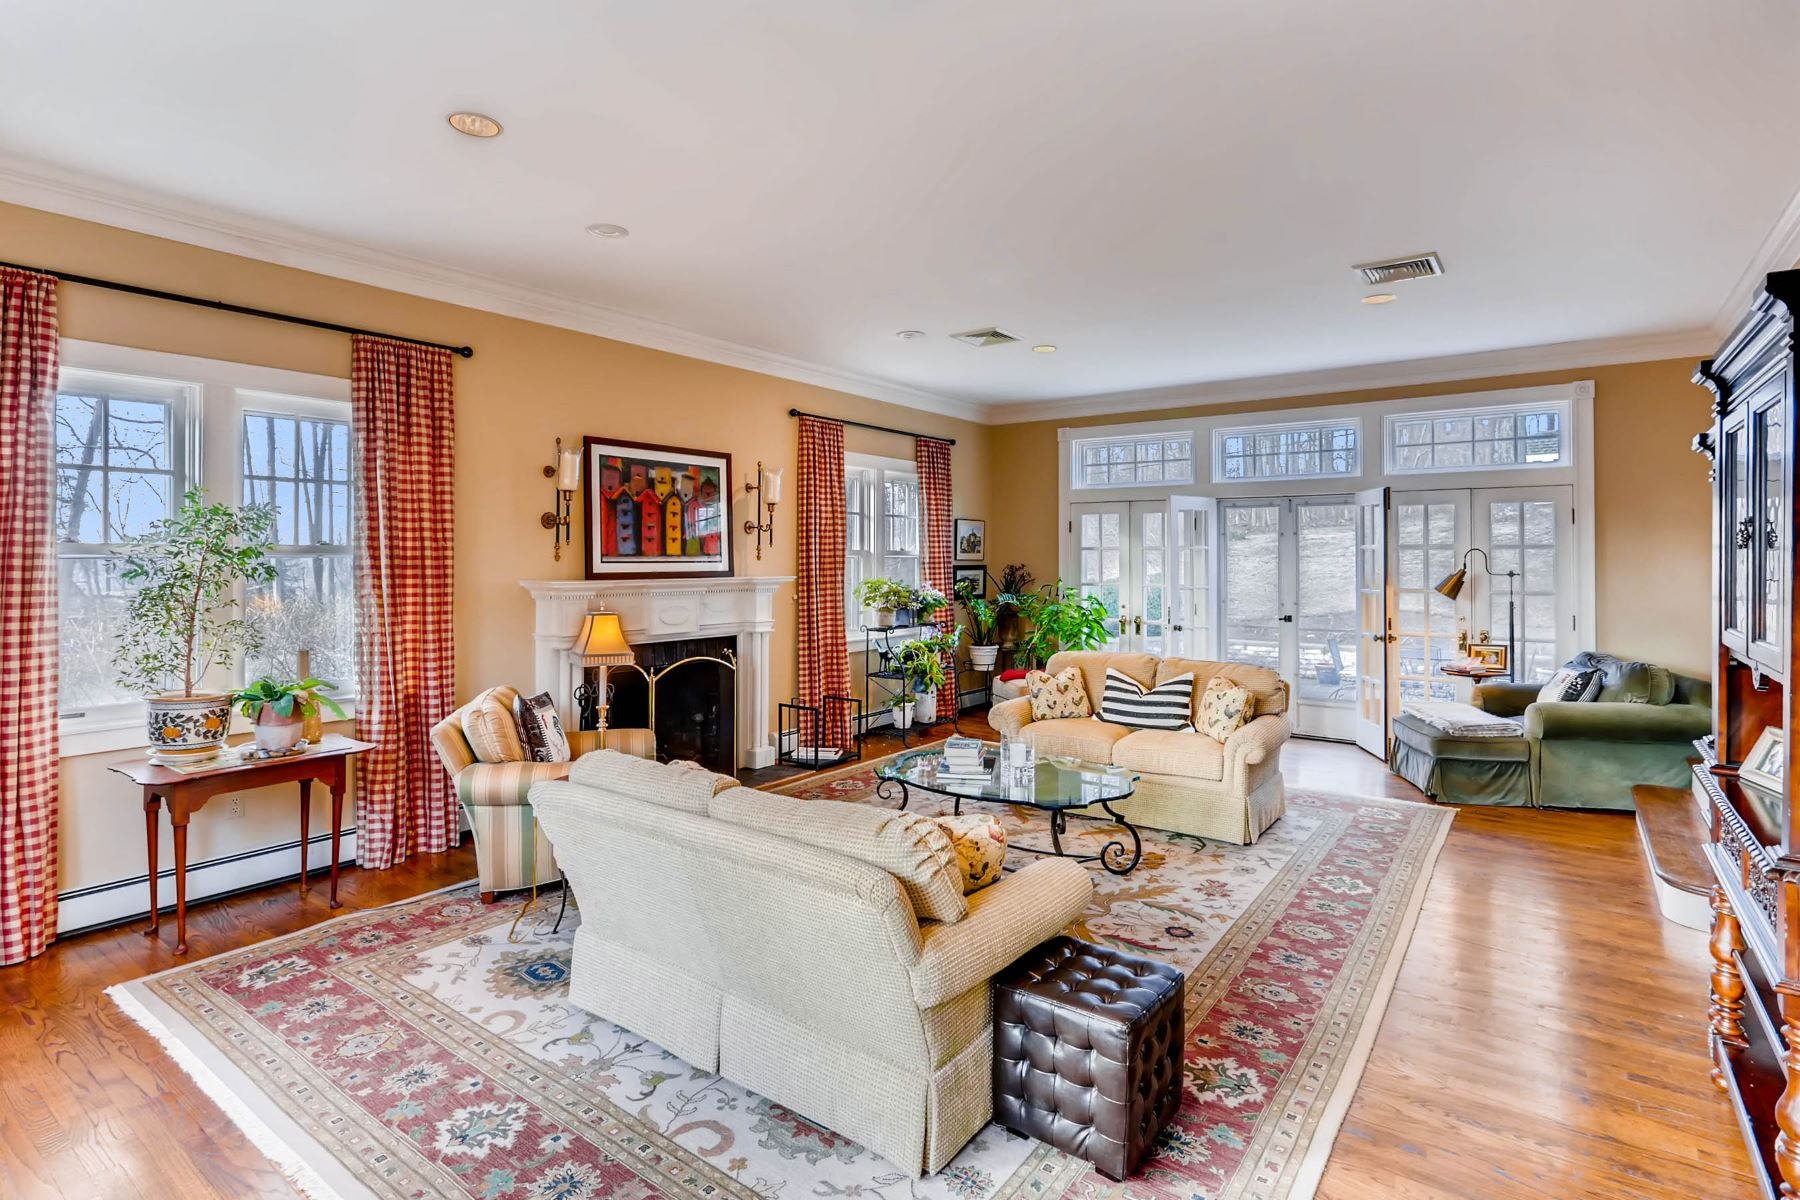 Single Family Homes for Sale at Greenspring Valley 424 Garrison Forest Road Owings Mills, Maryland 21117 United States